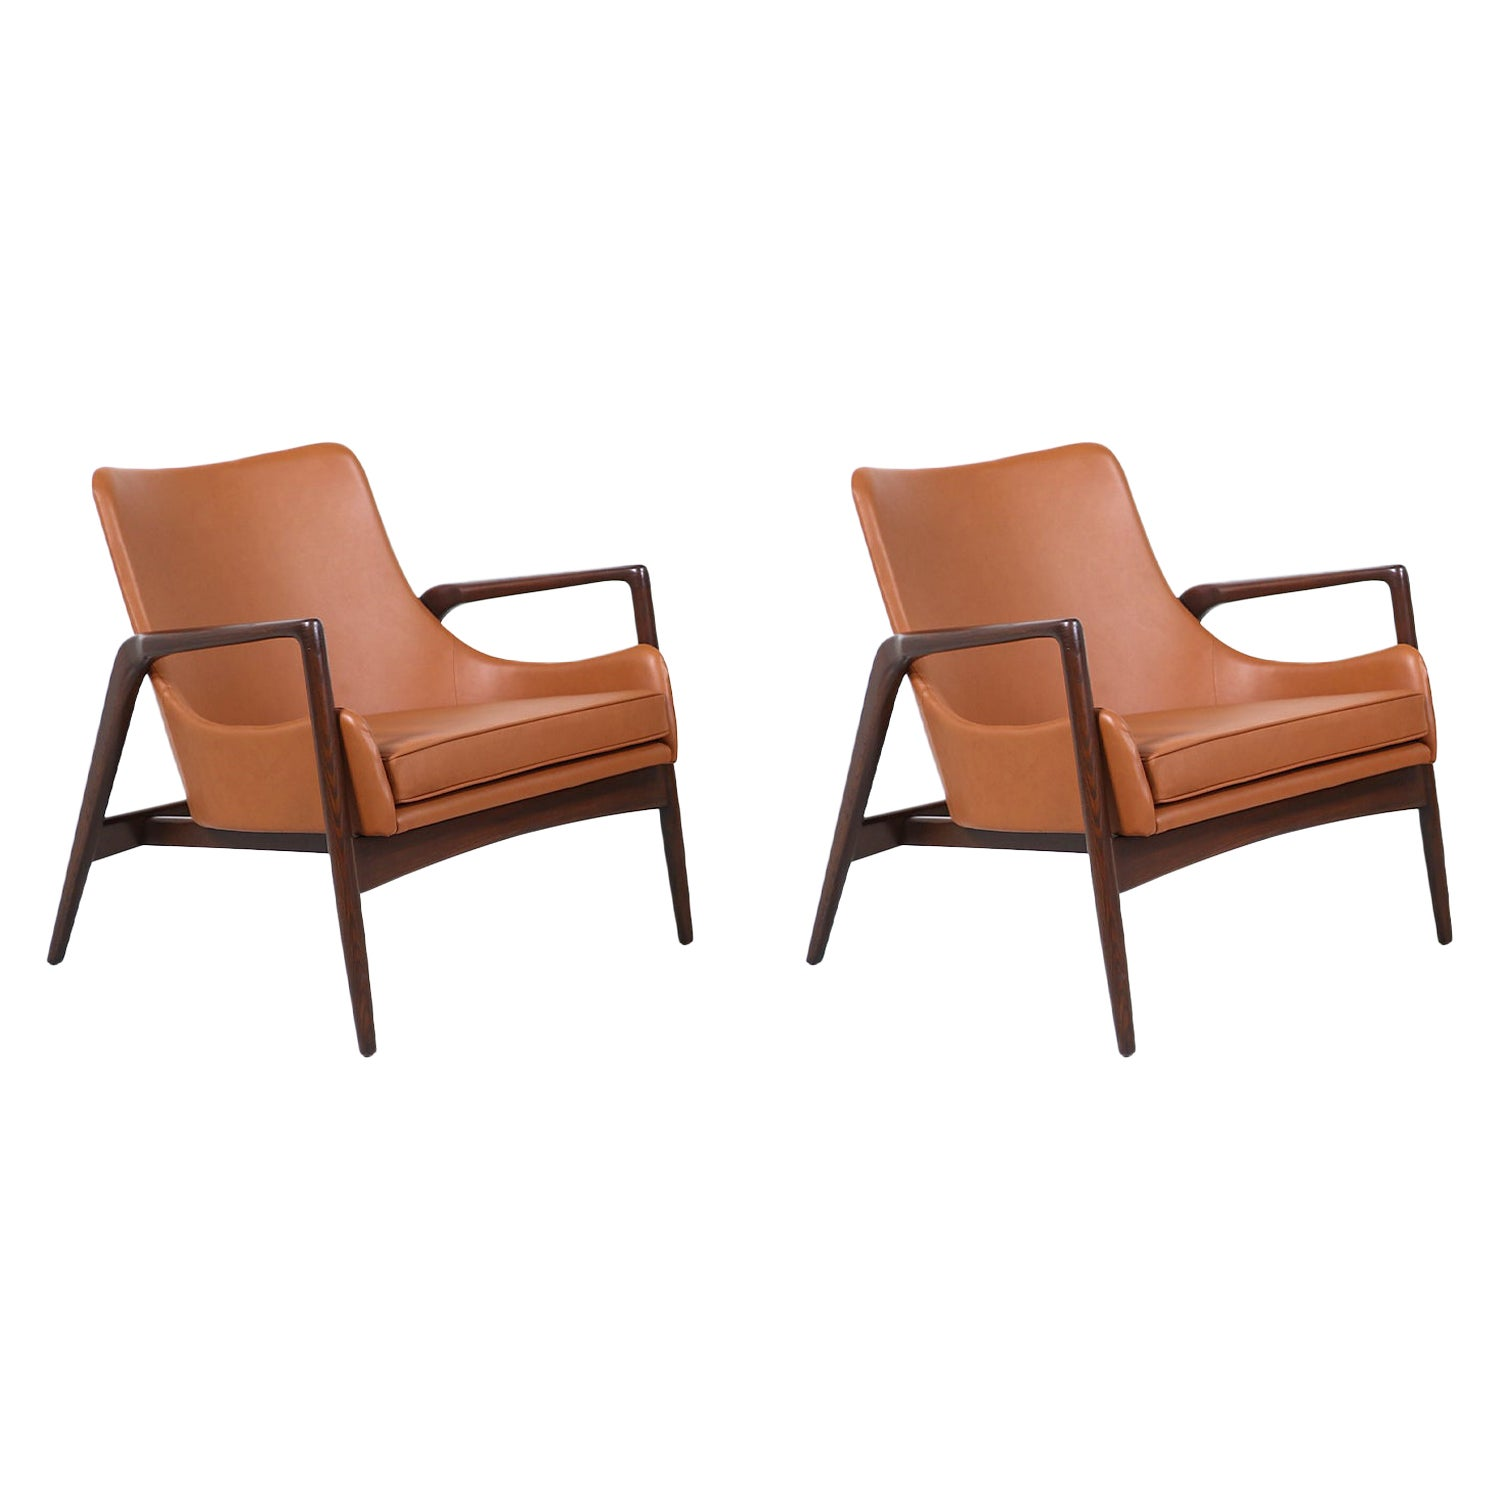 Ib Kofod-Larsen Leather Sculpted Lounge Chairs for Selig